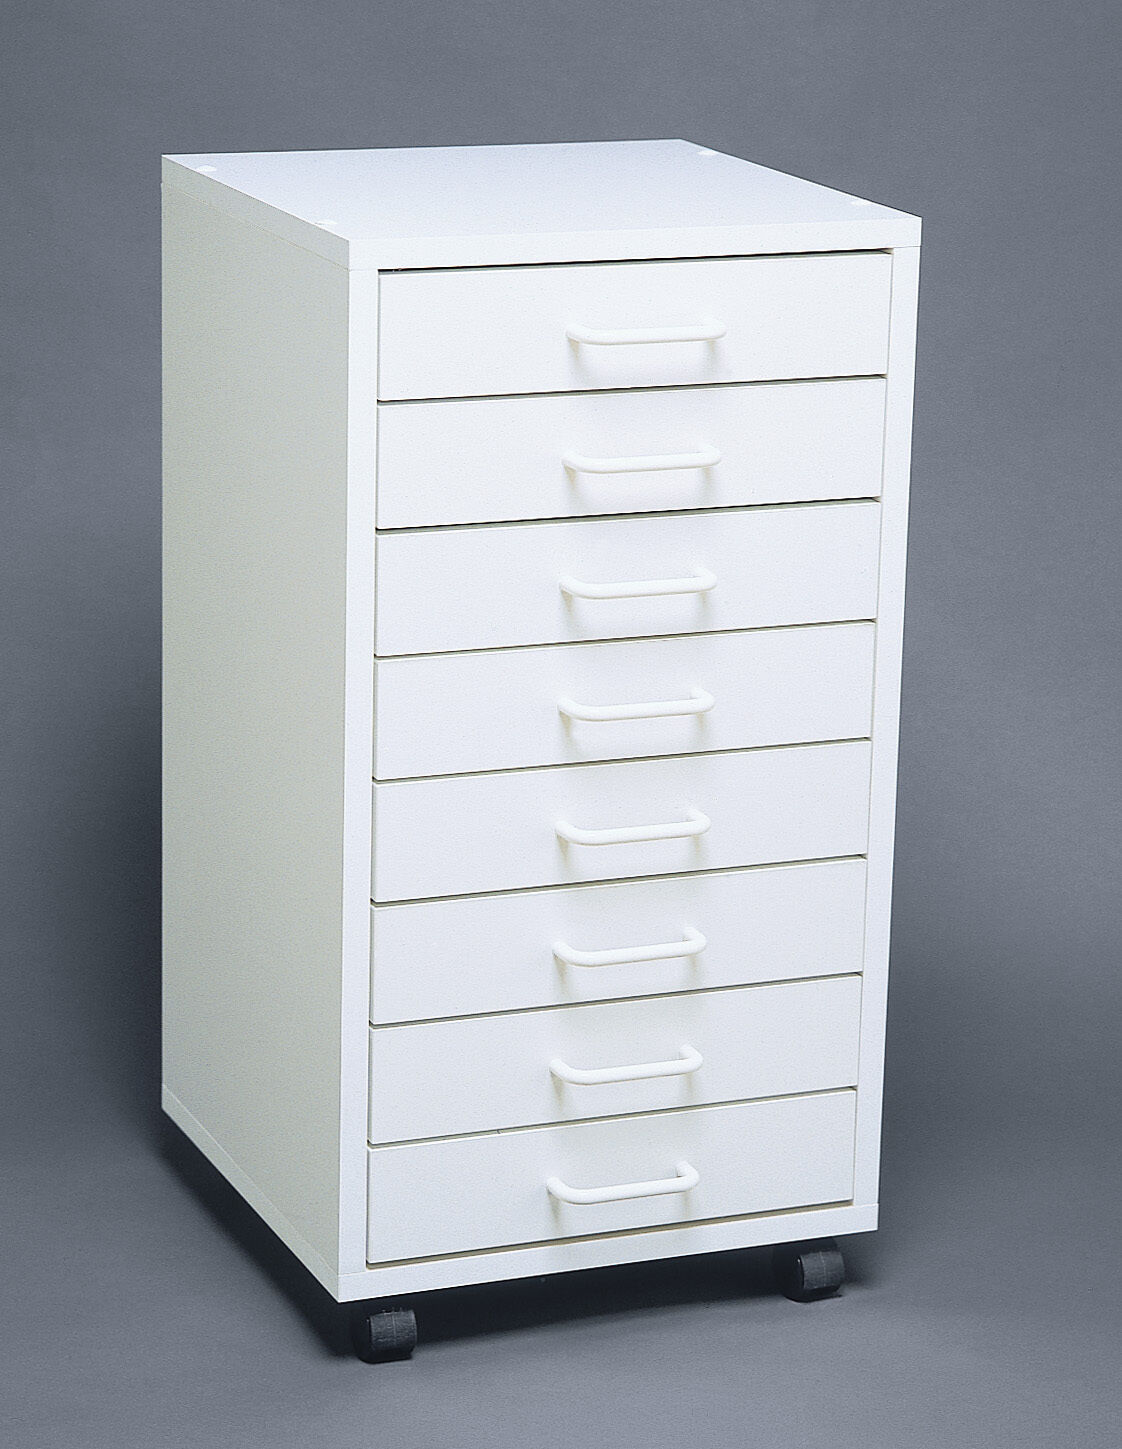 DentalMedical 8 Drawer MOBILE CABINETSTORAGE CART EBay